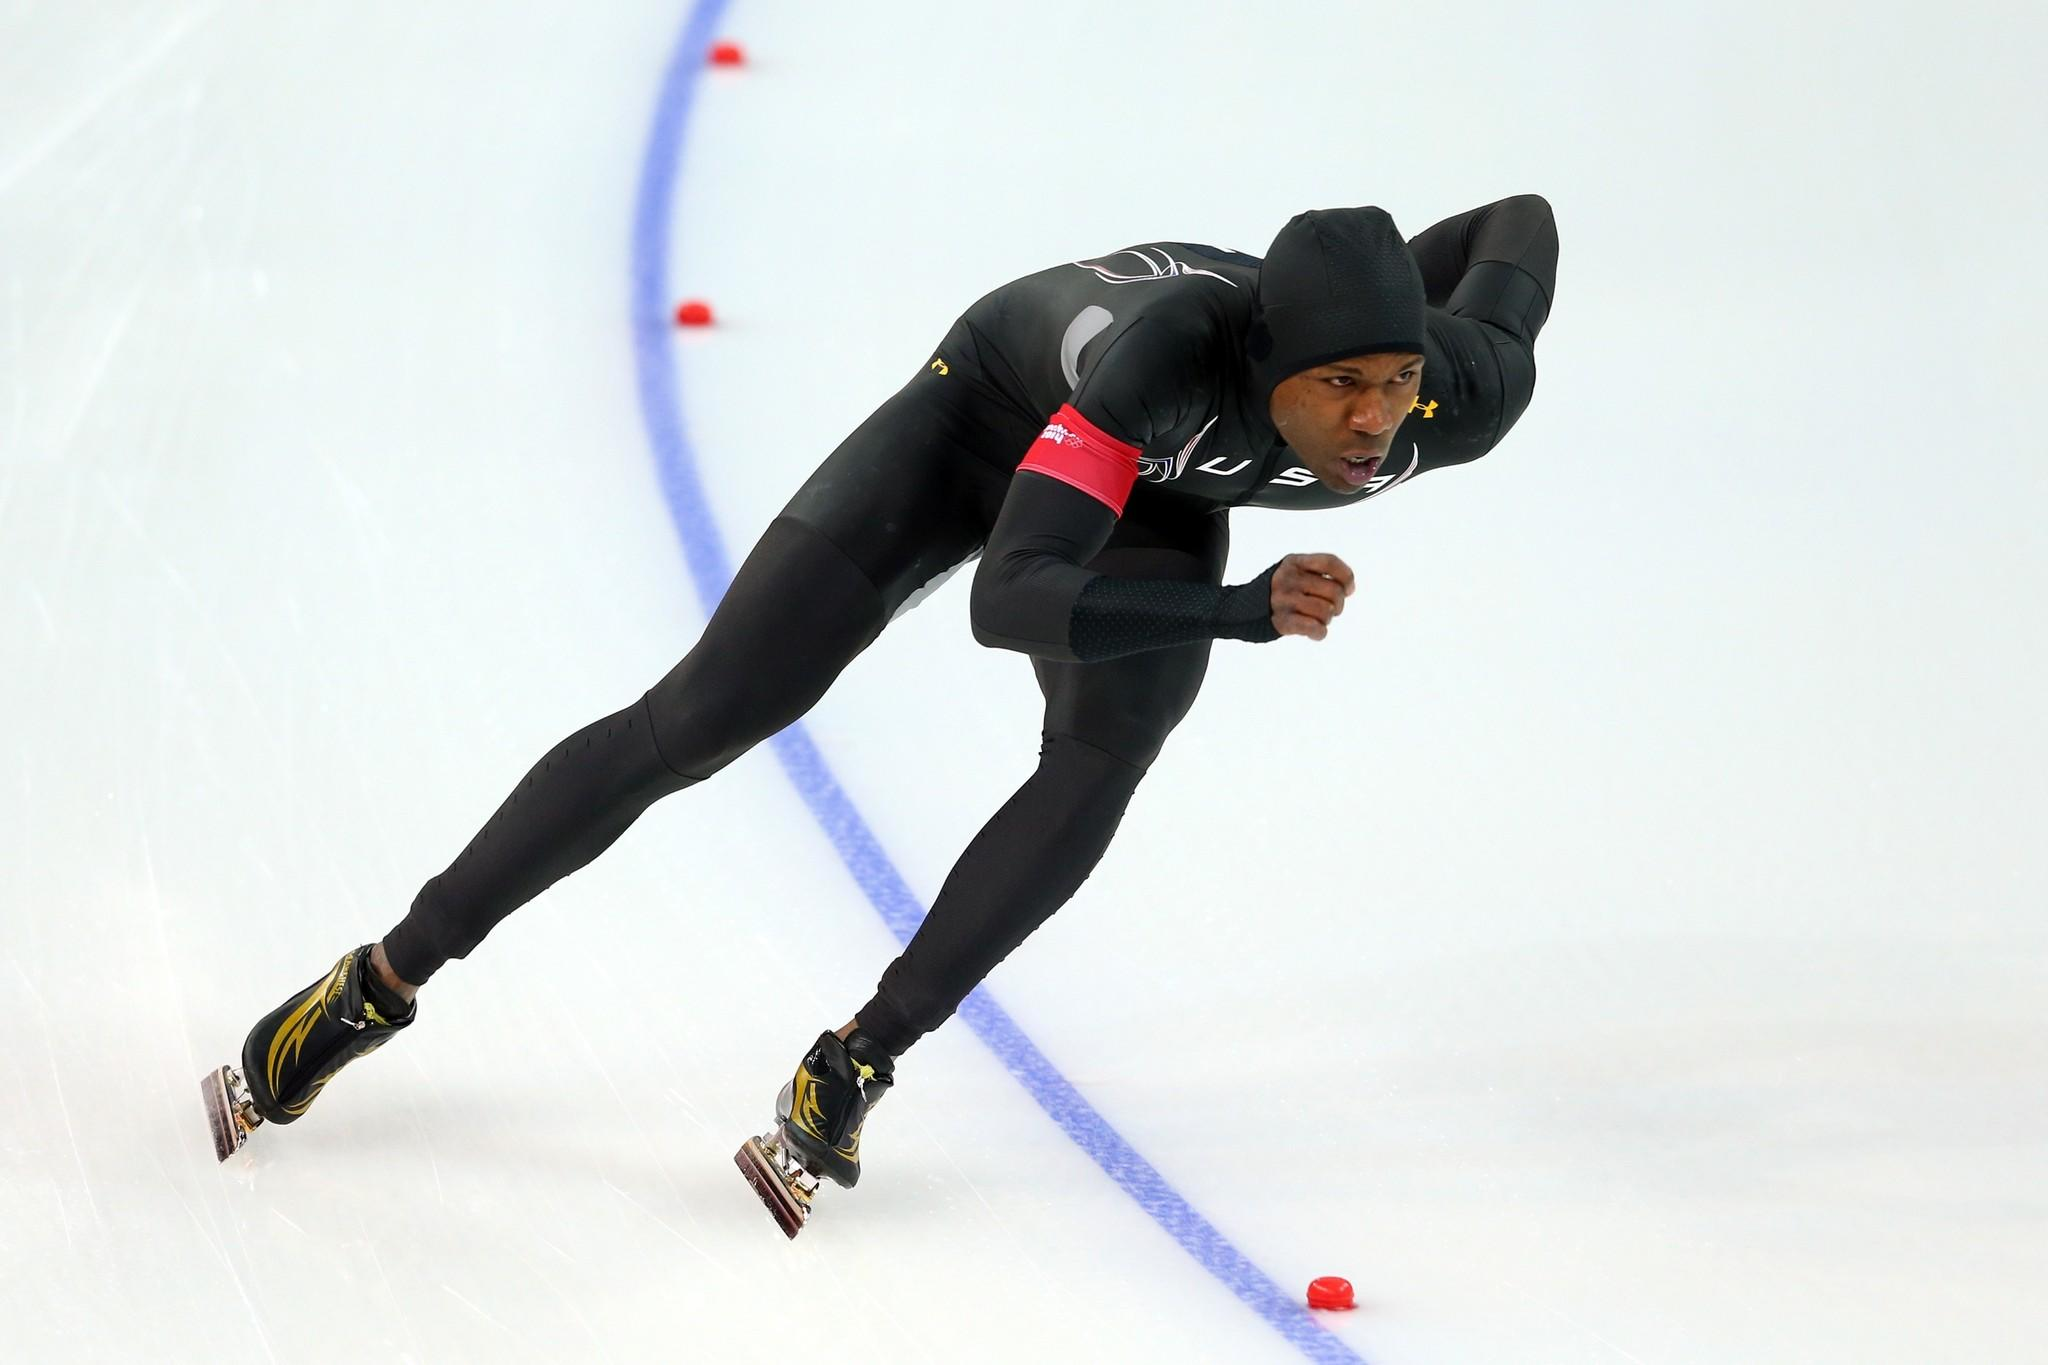 Shani Davis of the United States competes during the Men's 1000m Speed Skating event.